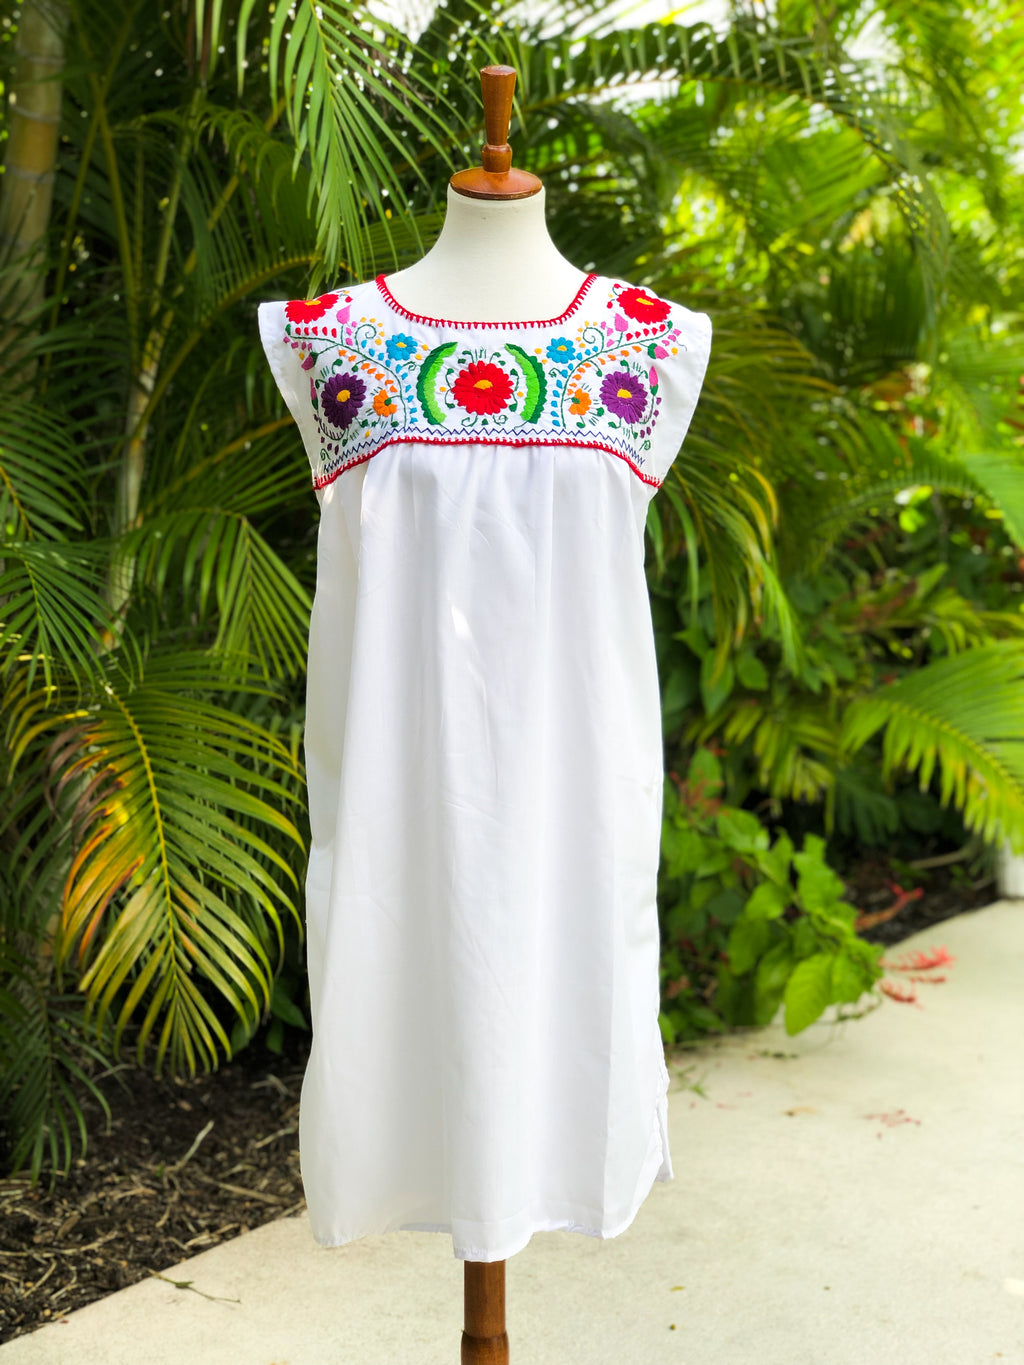 Mexican Dress Channel, No sleeves, Short dress